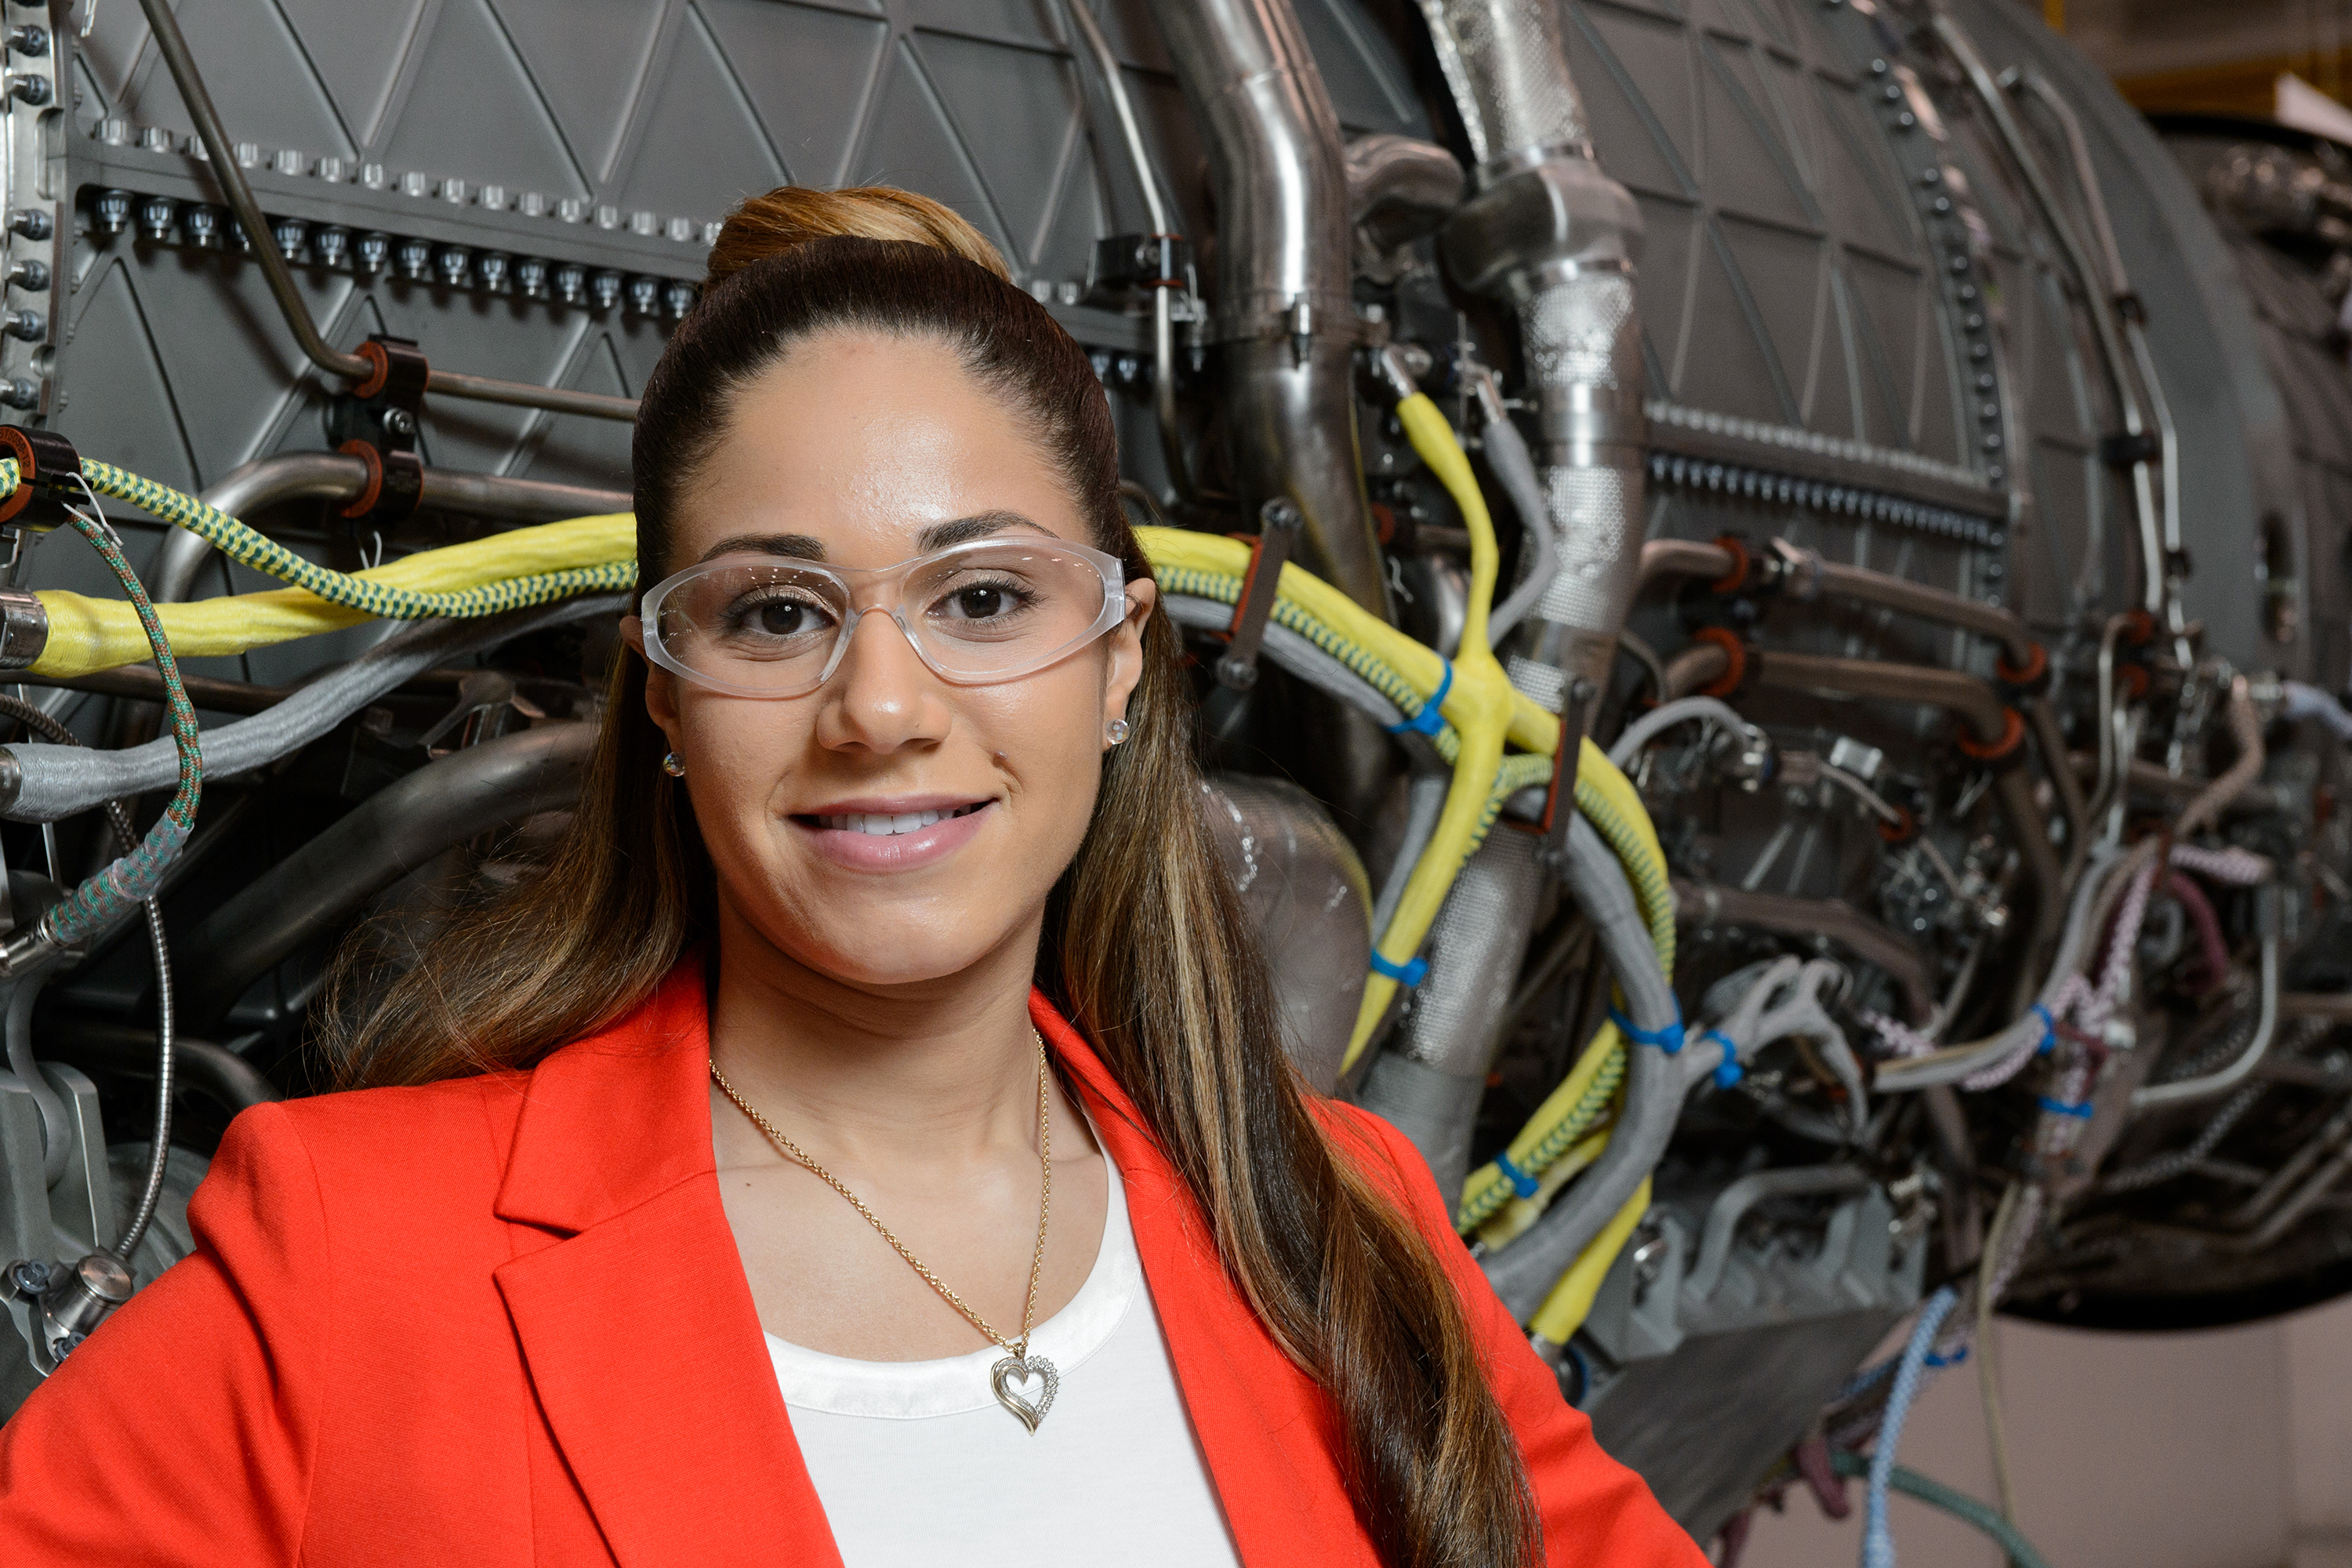 uconn graduates landing jobs quickly after graduation uconn today melissa jacques a 2010 graduate in engineering found a job working jet engines